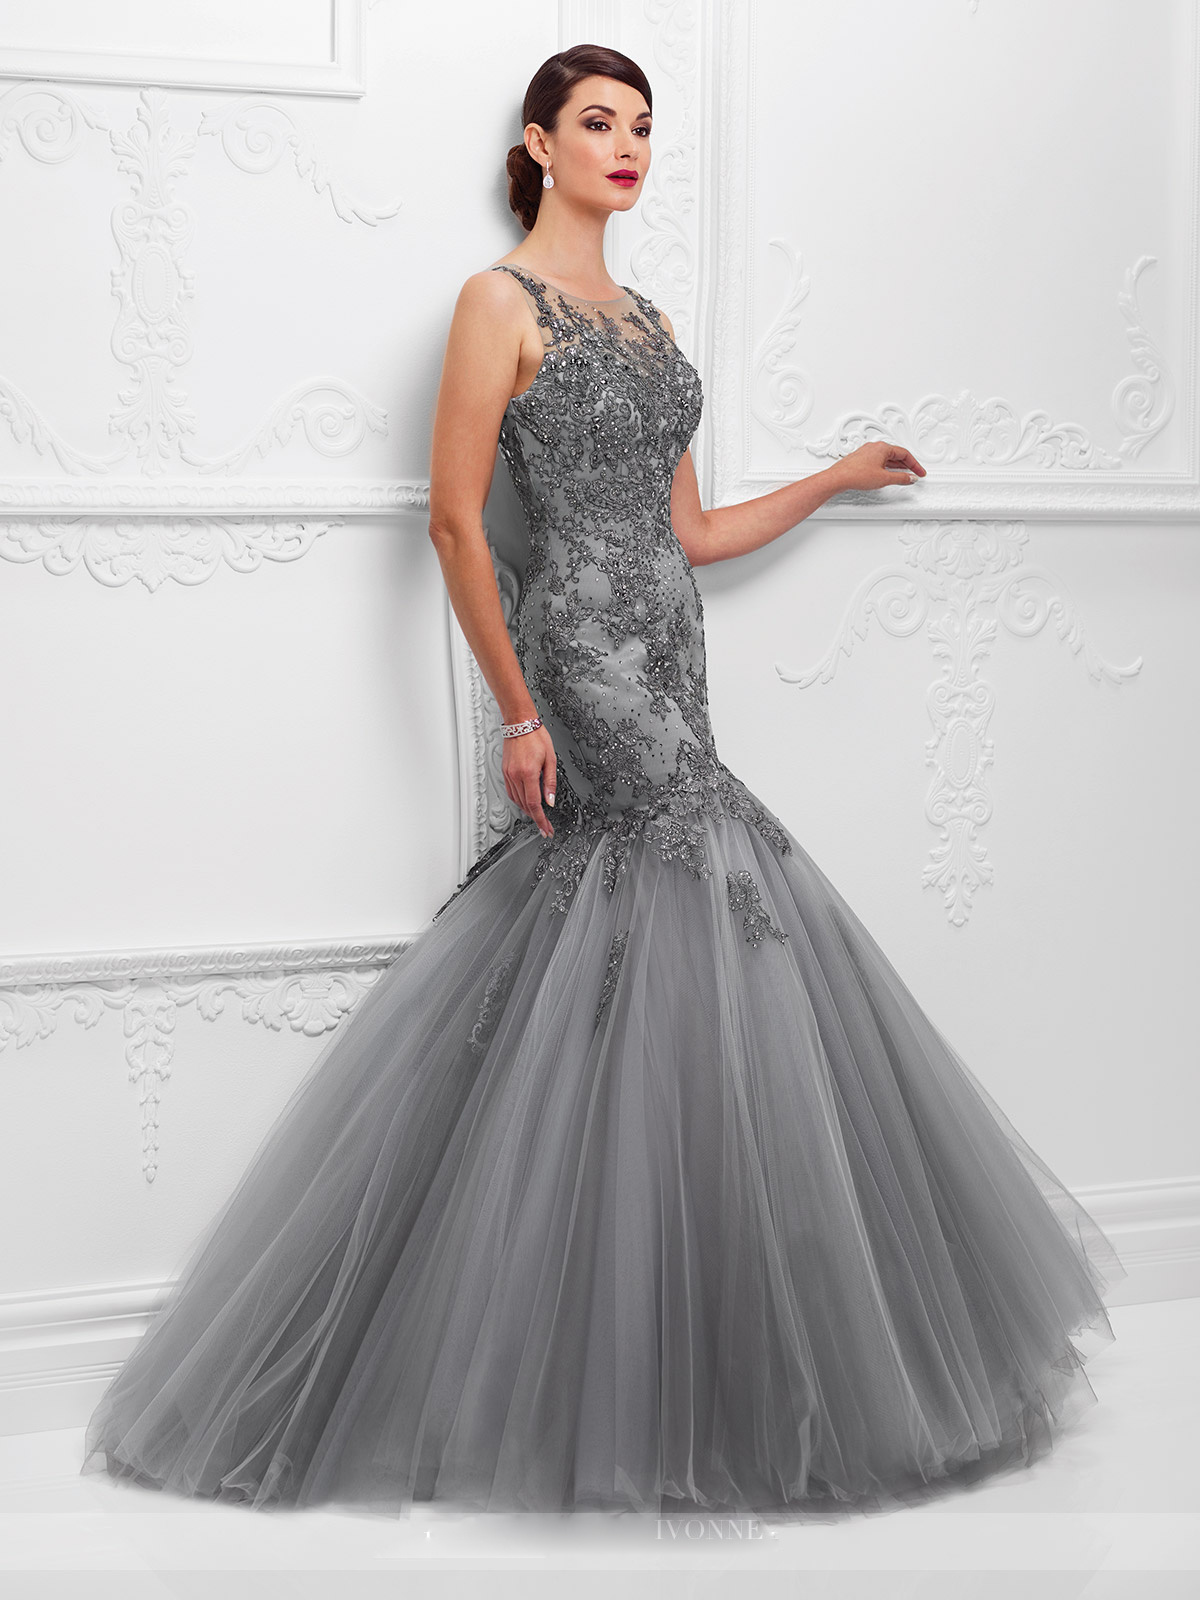 Hot Item Amelie Rocky Silver Grey Applique Beads Mermaid Evening Dress Formal Gown